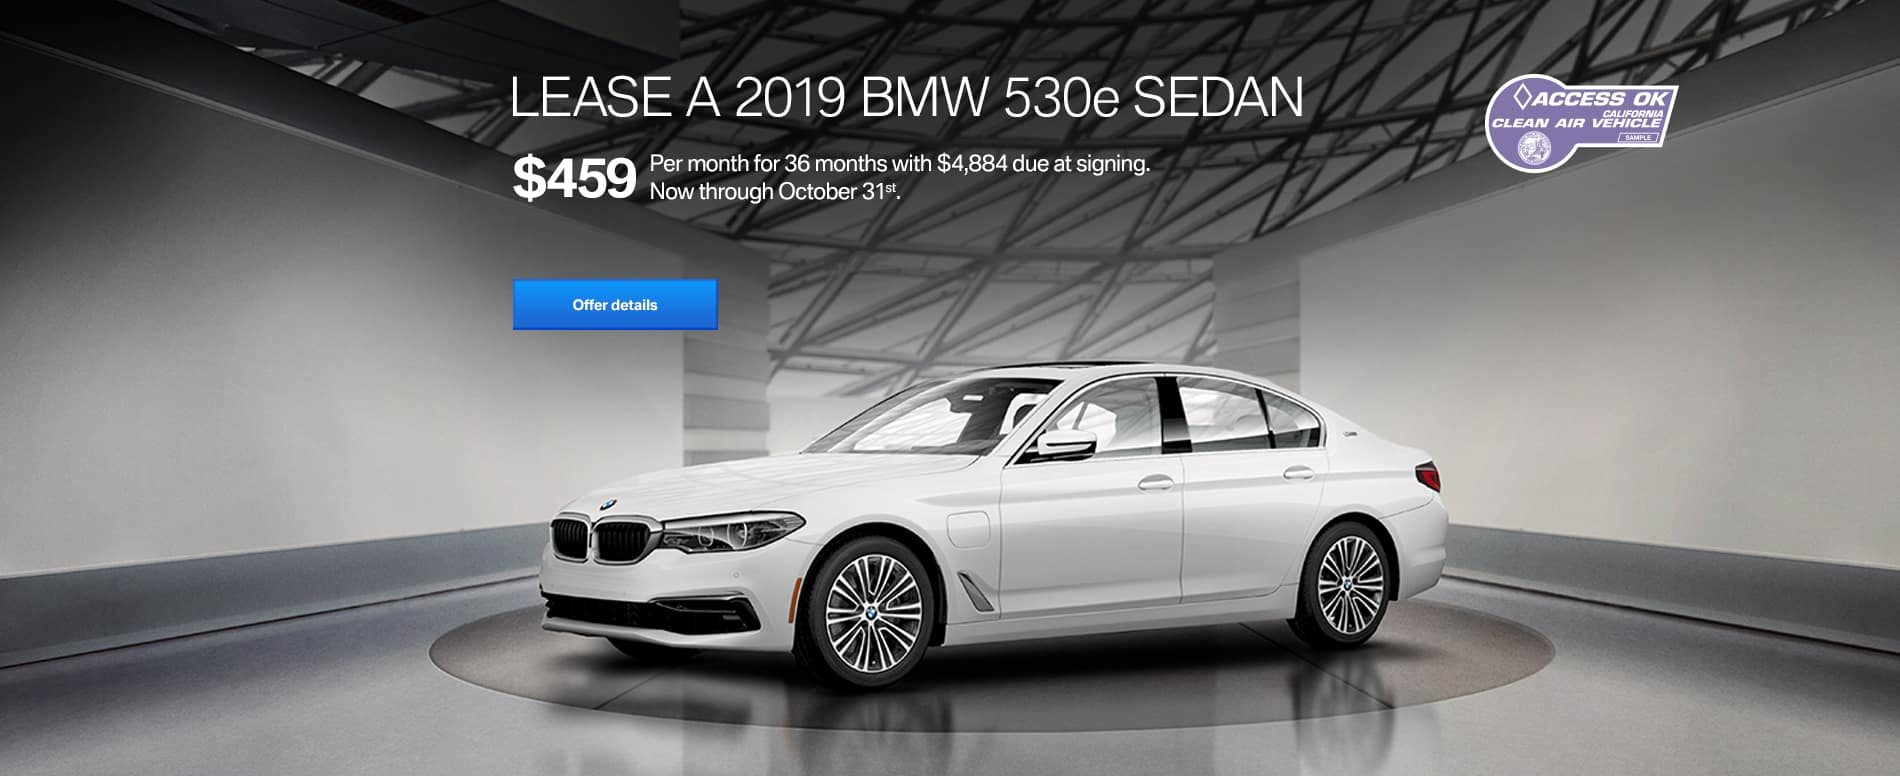 2019 BMW 530e with HOV